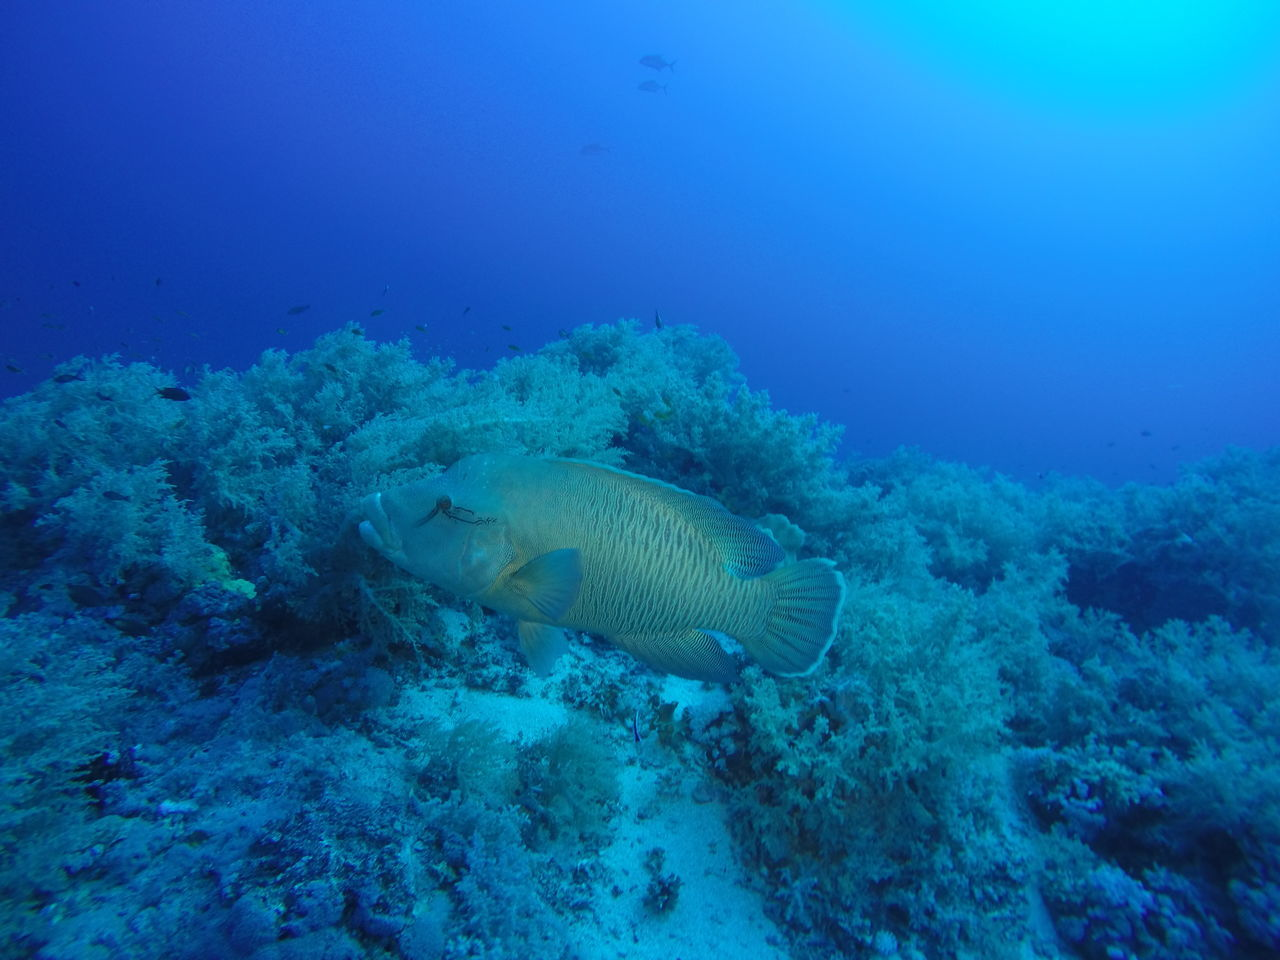 A large napoleon fish passing by while diving at the Daedalus Reef in the Red Sea, Egypt Adventure Animal Wildlife Animals In The Wild Diving Egypt Fish Napoleon Nature Nature Photography Ocean One Animal Red Sea Reef SCUBA Scuba Diving Sea Sea Life UnderSea Underwater Underwater Photography Wildlife & Nature Wildlife Photography